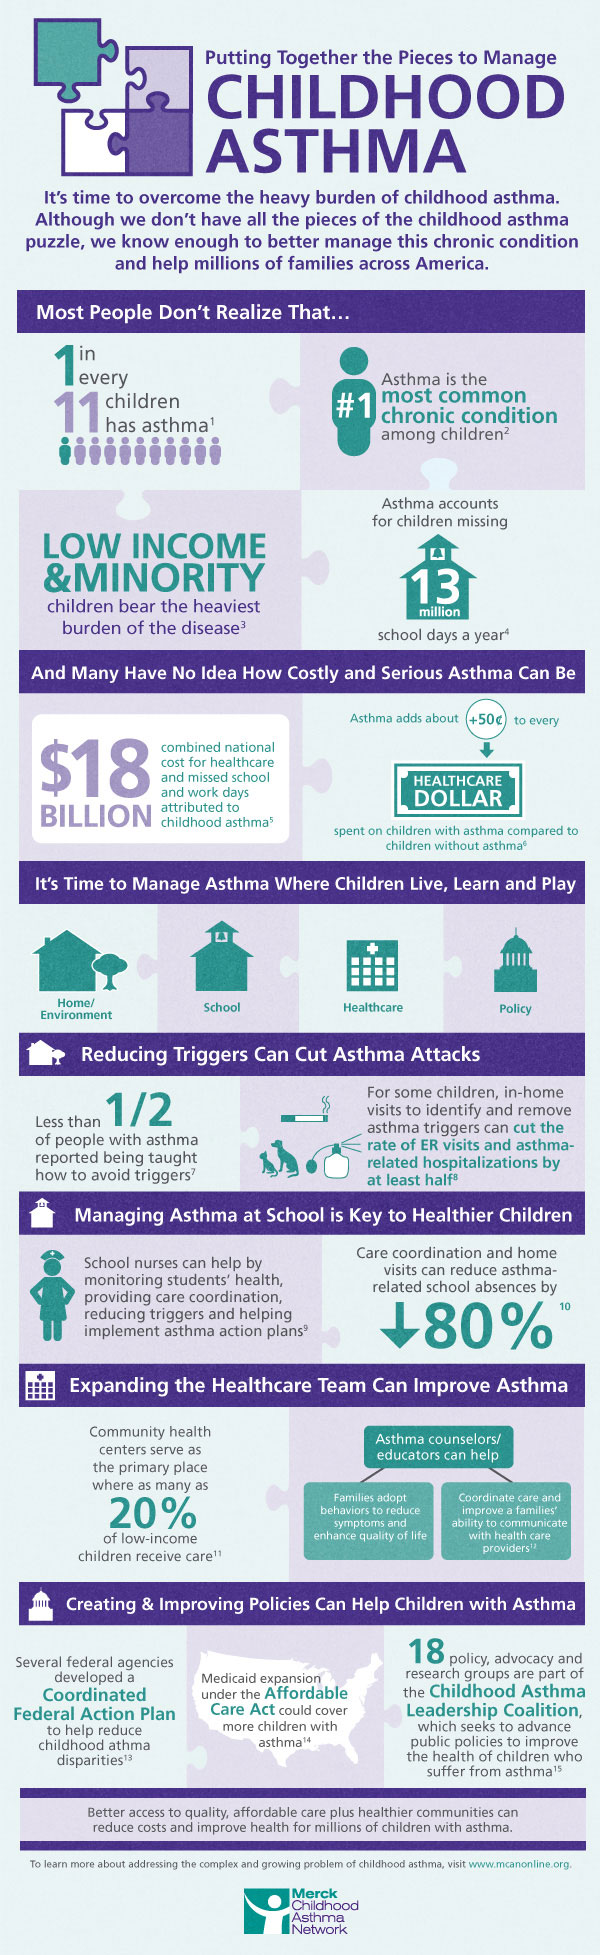 Fighting Children Asthma-Infographic